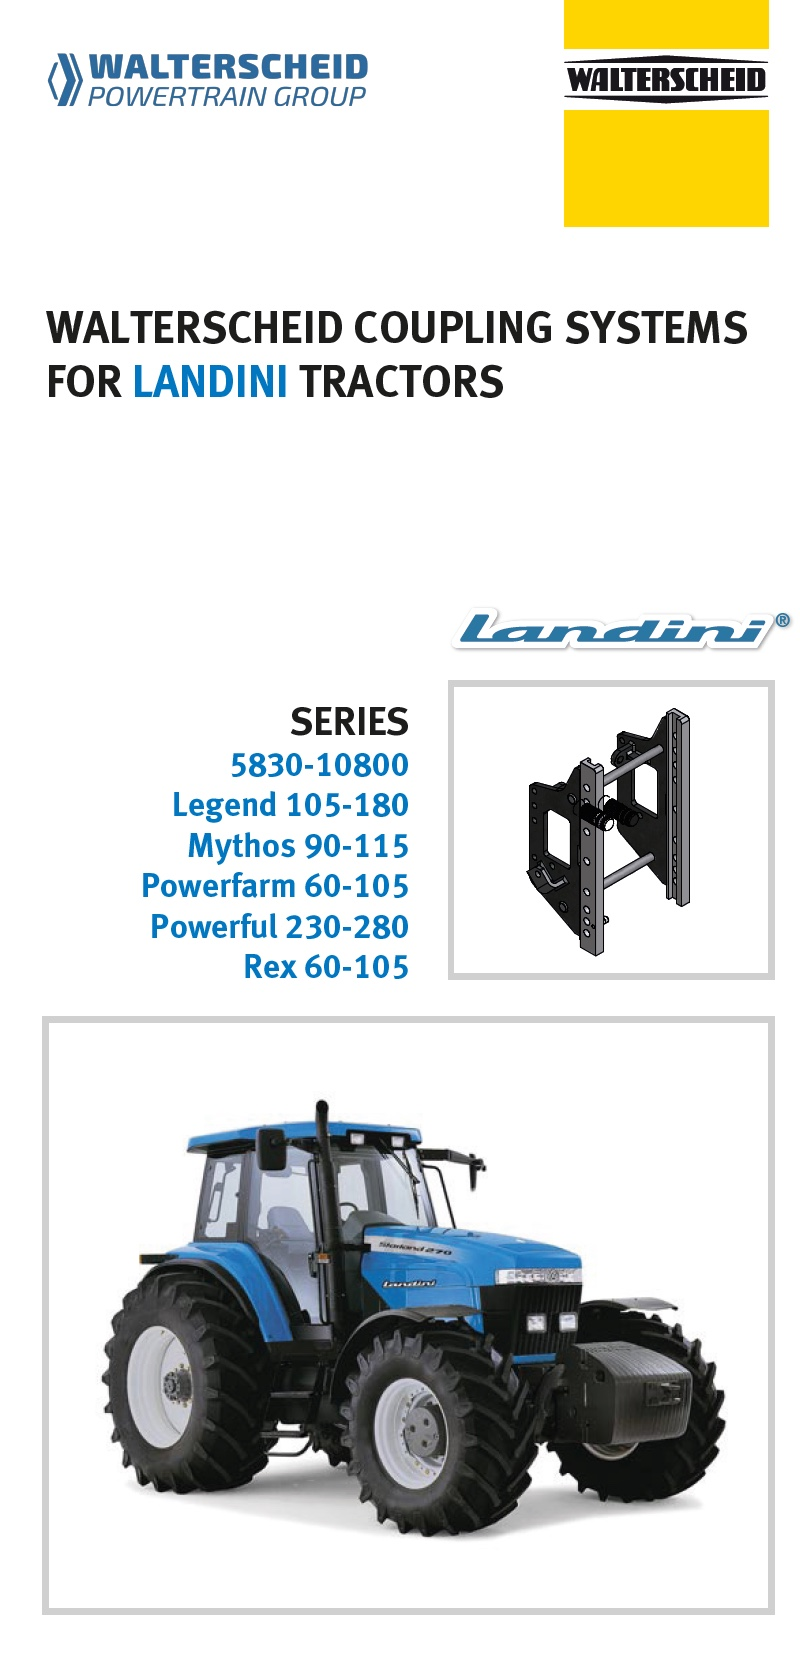 Coupling systems for Landini tractors